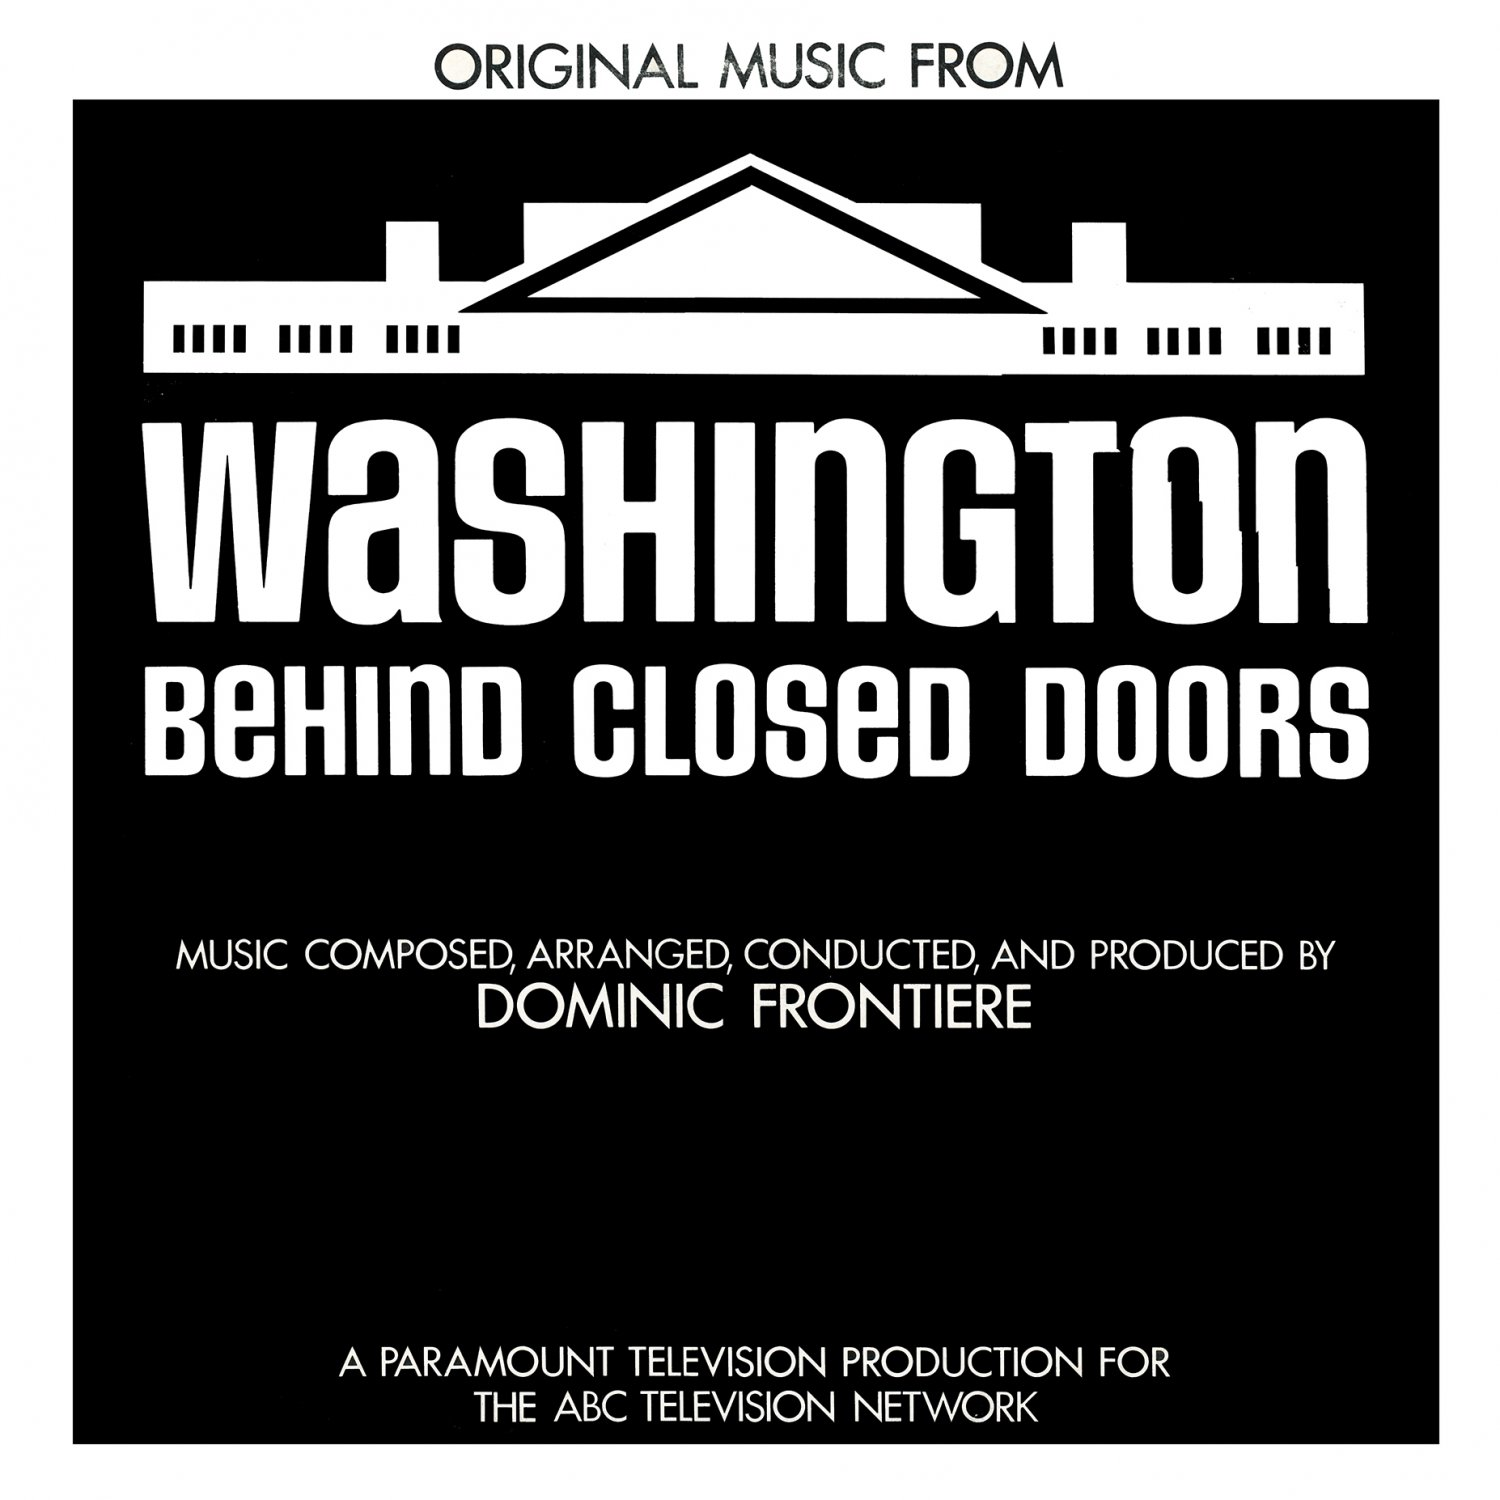 Washington Behind Closed Doors - Original Soundtrack Dominic Frontiere OST LP/CD  sc 1 st  Svoundtrack - eCRATER & Washington Behind Closed Doors - Original Soundtrack Dominic ...